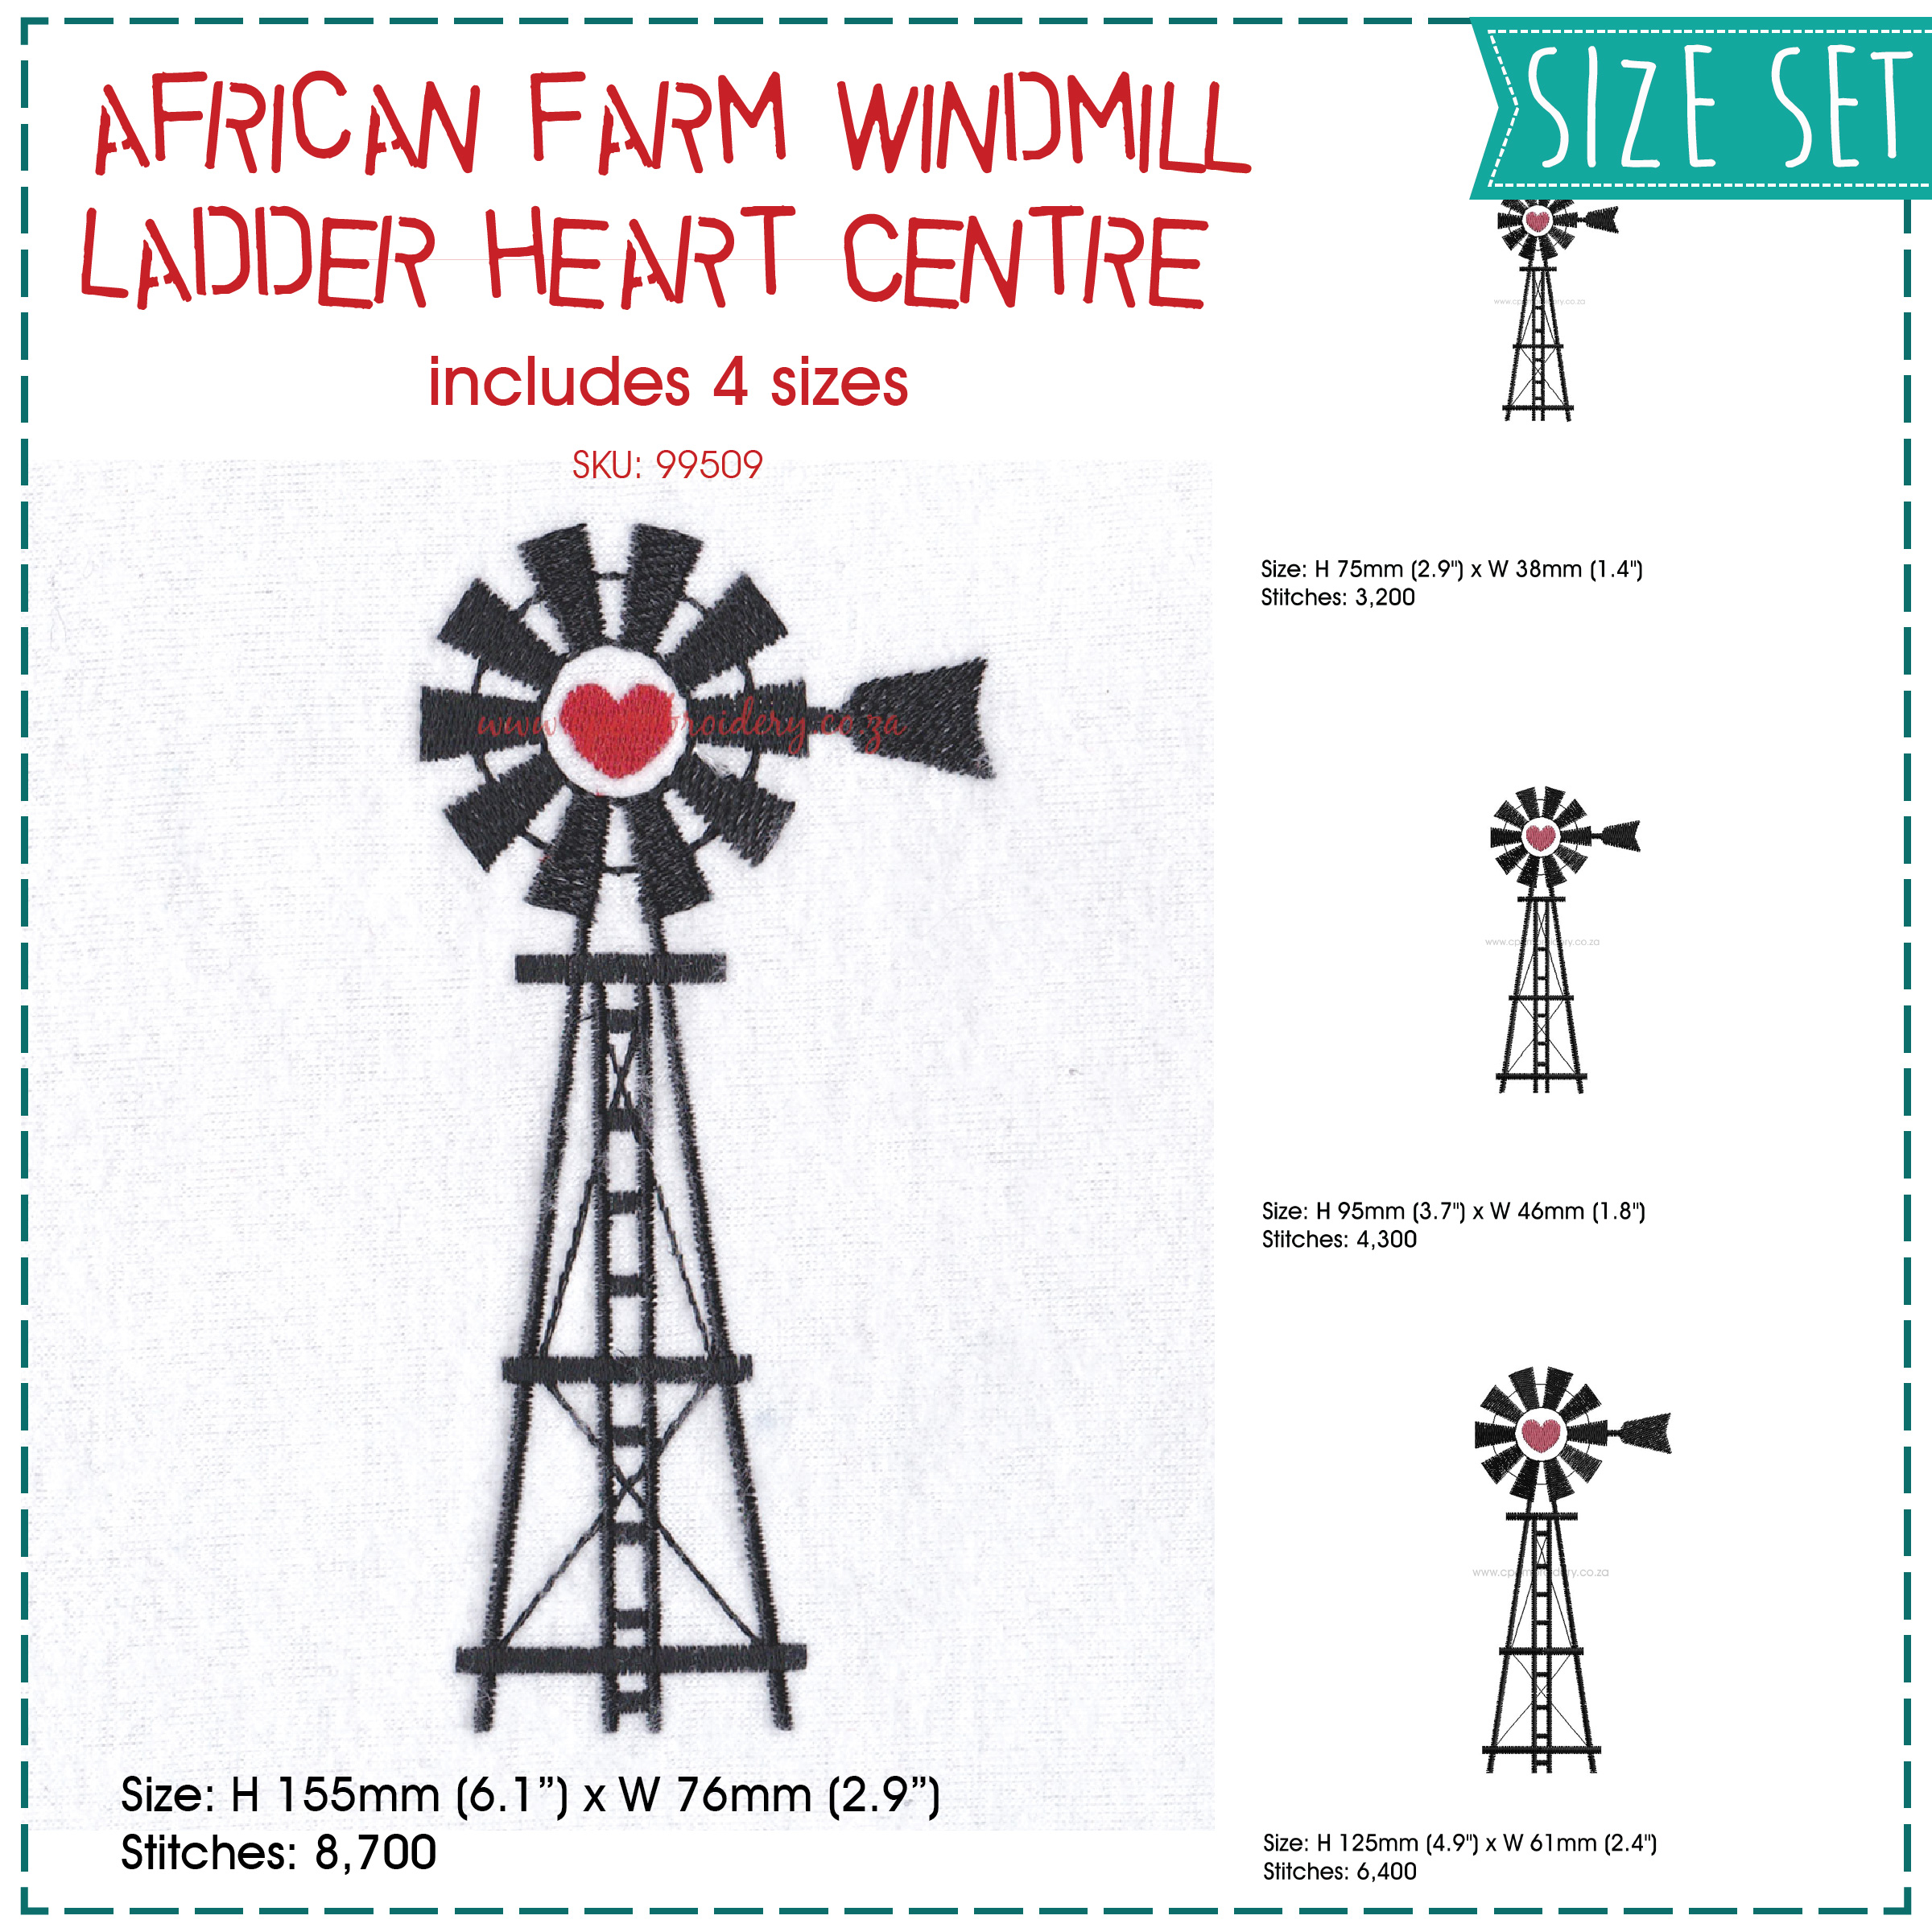 simple black red heart farm windmill windpomp plaas hart embroidery design size set pack